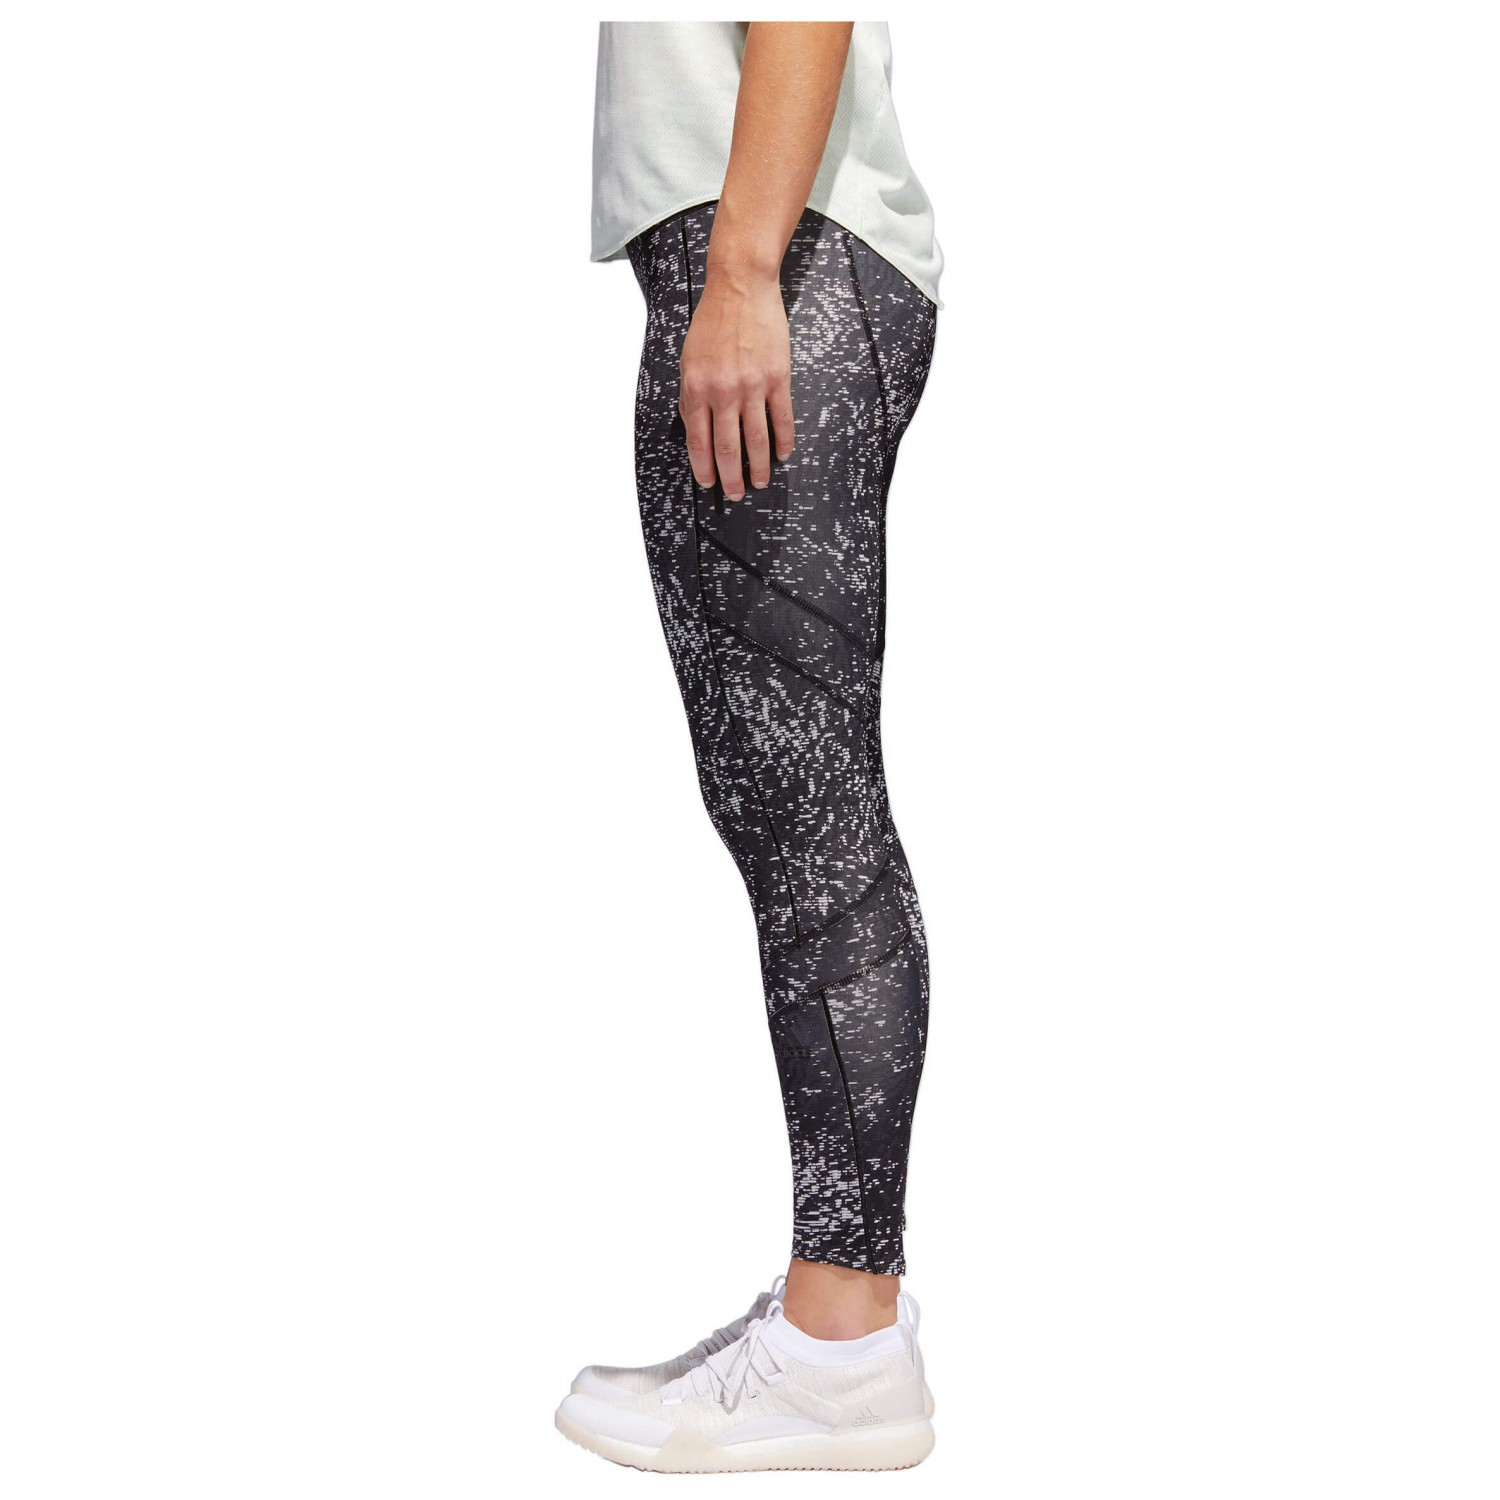 8bce53484c2d41 Adidas How We Do 7/8 Tight - Running Trousers Women's | Buy online ...